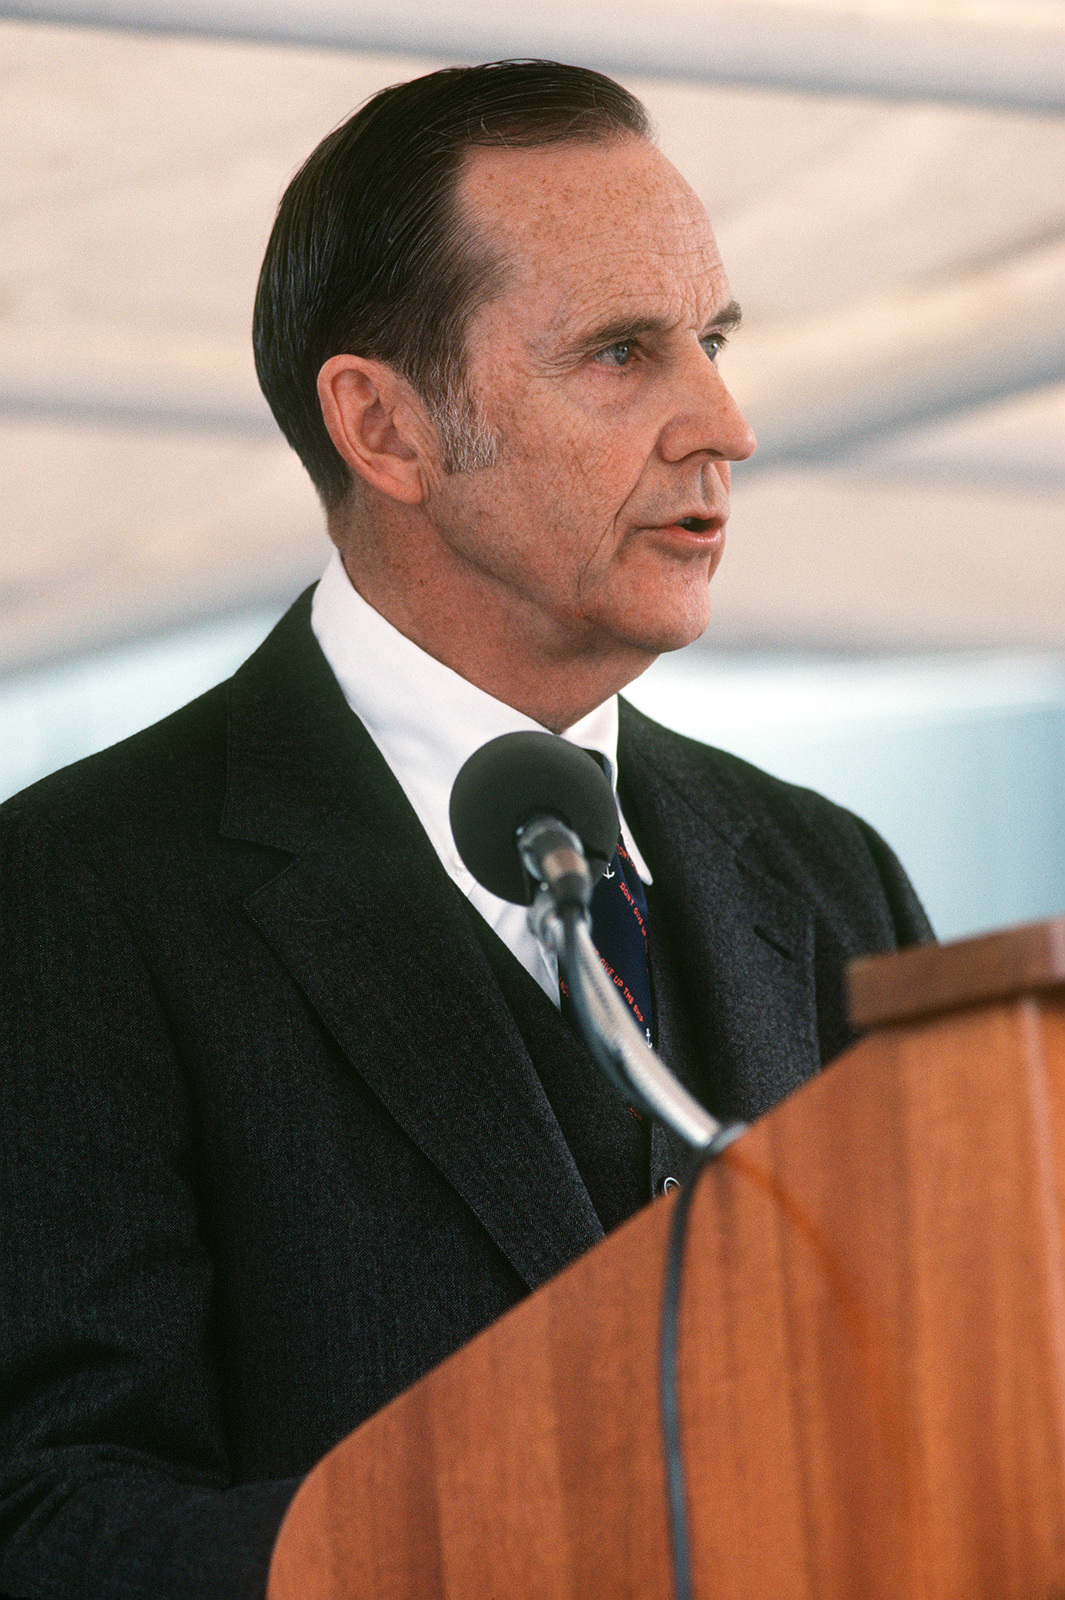 Robert H. Conn, deputy undersecretary of the Navy, Financial Management, speaks during the commissioning of the guided missile frigate USS DOYLE (FFG 39)